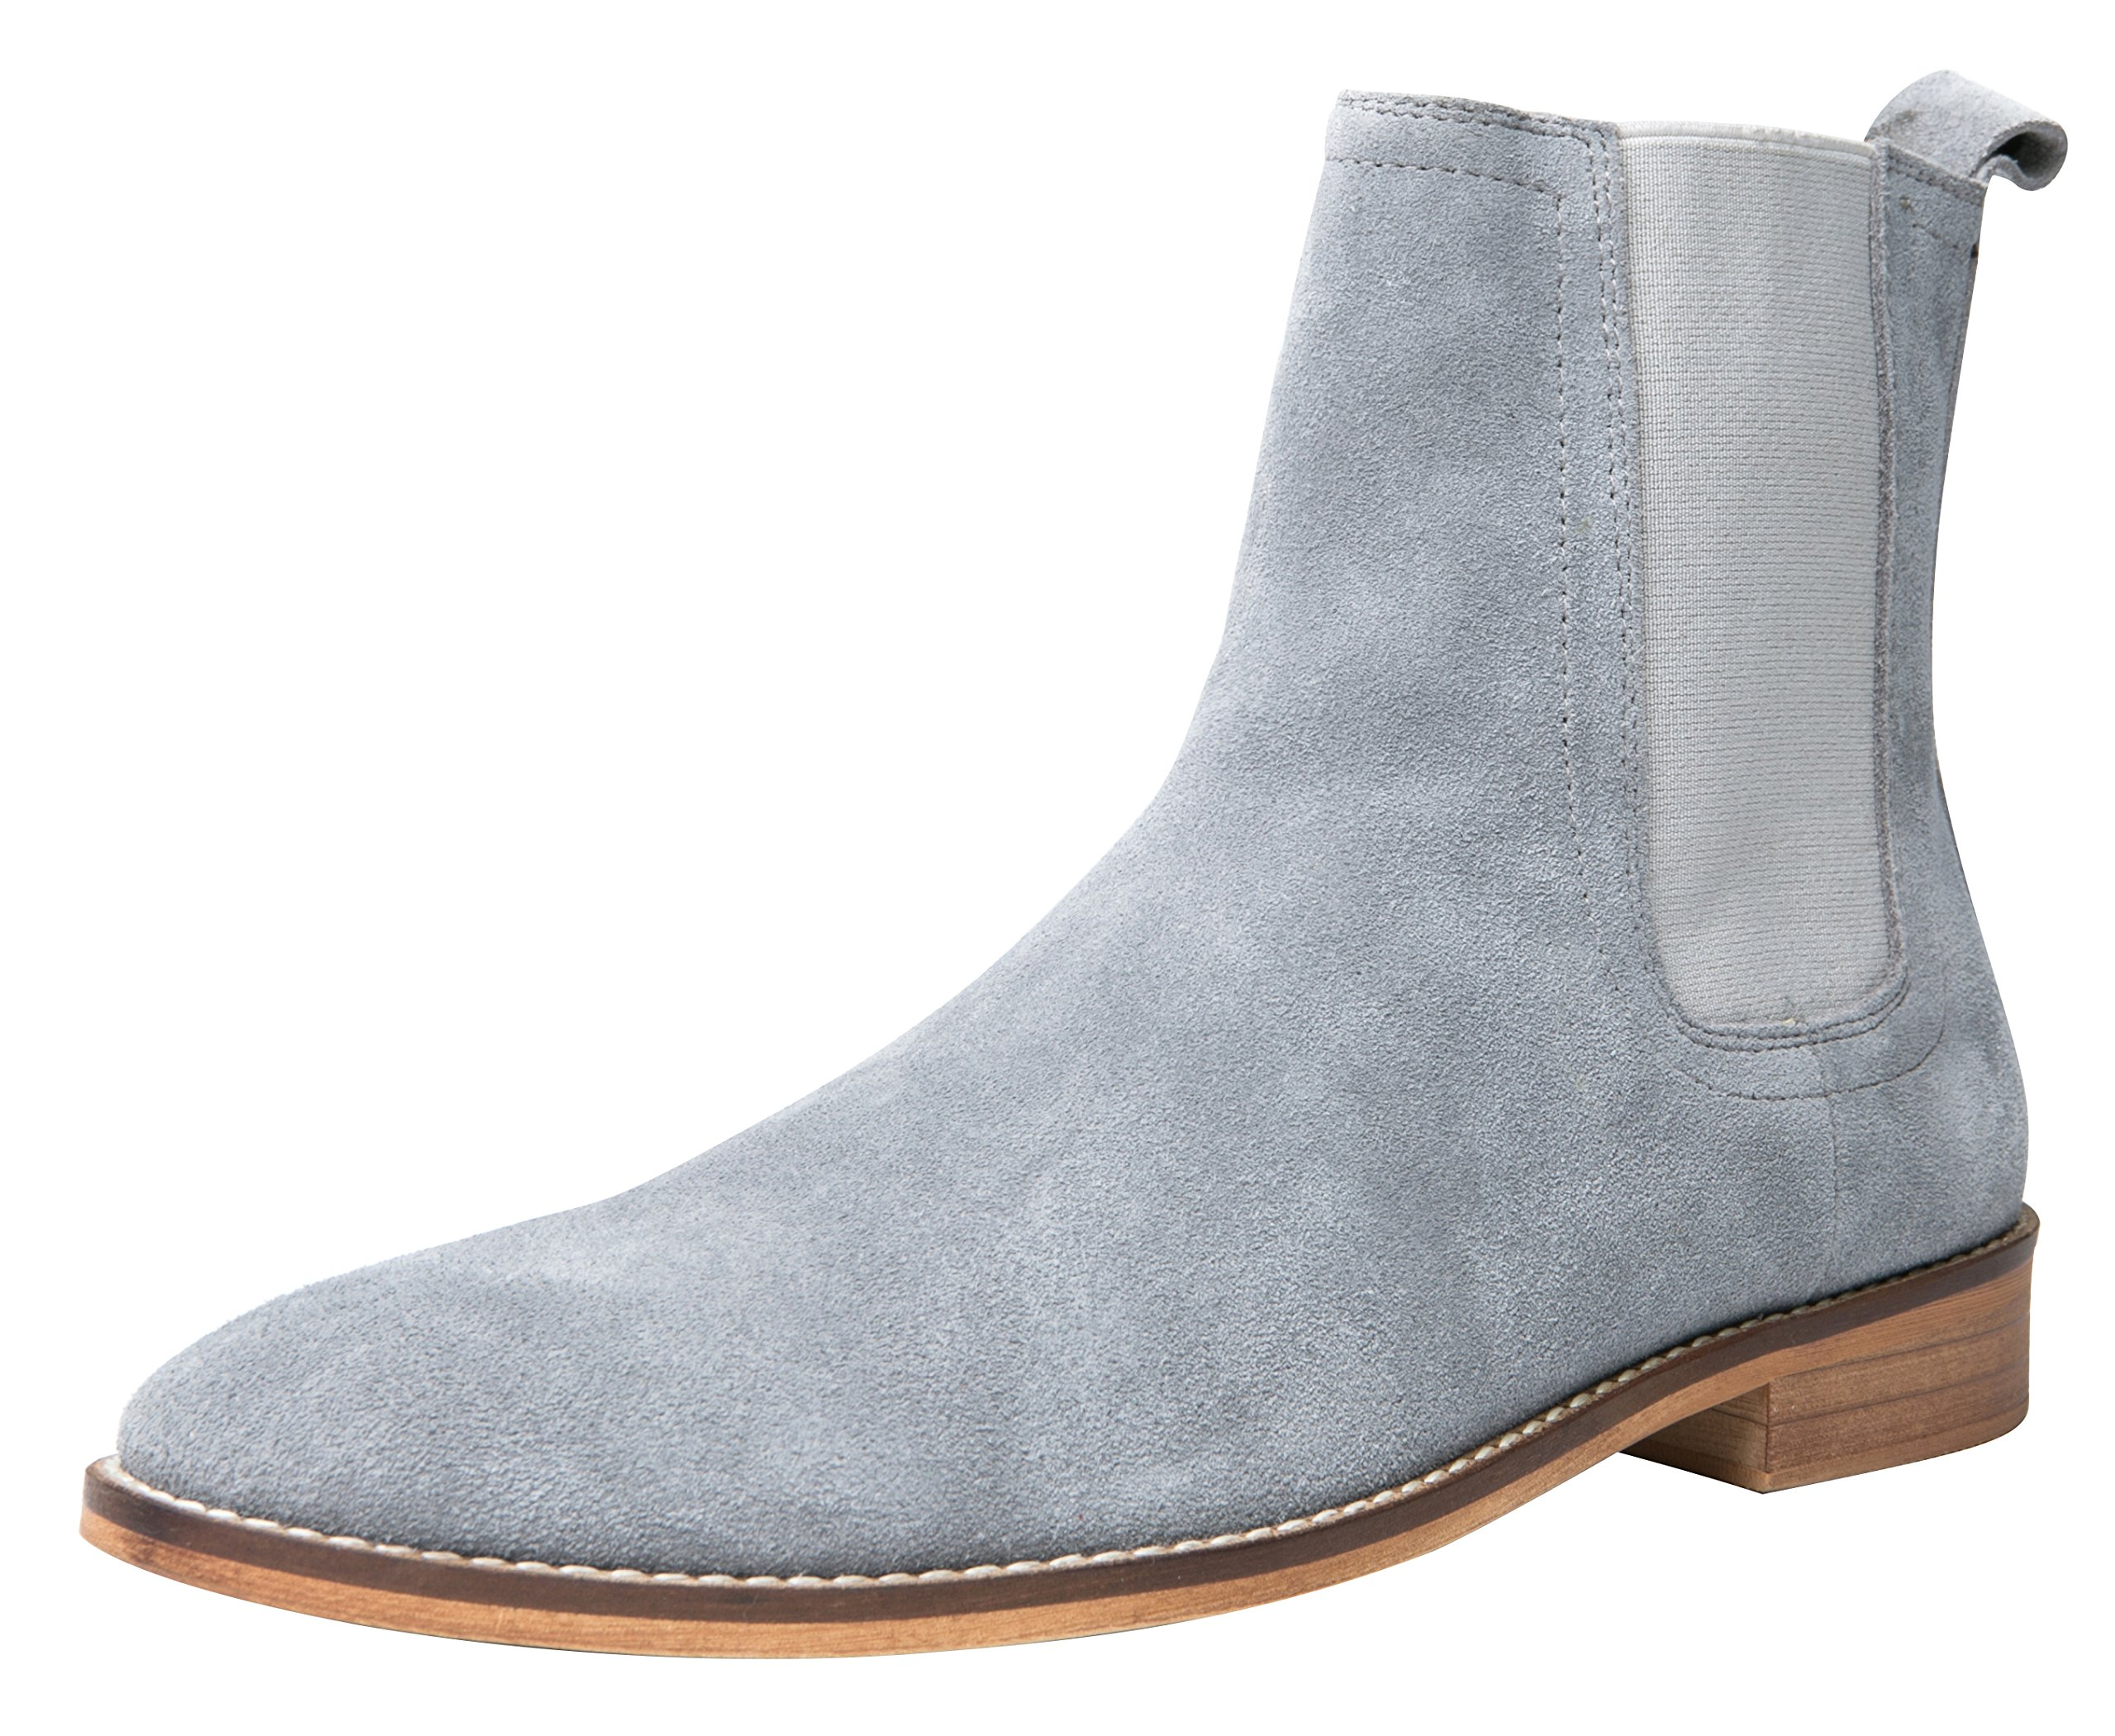 Santimon Chelsea Boots Men Suede Casual Dress Boots Ankle Boots Formal Shoes by Black Brown Grey Grey 11 D(M) US by Santimon